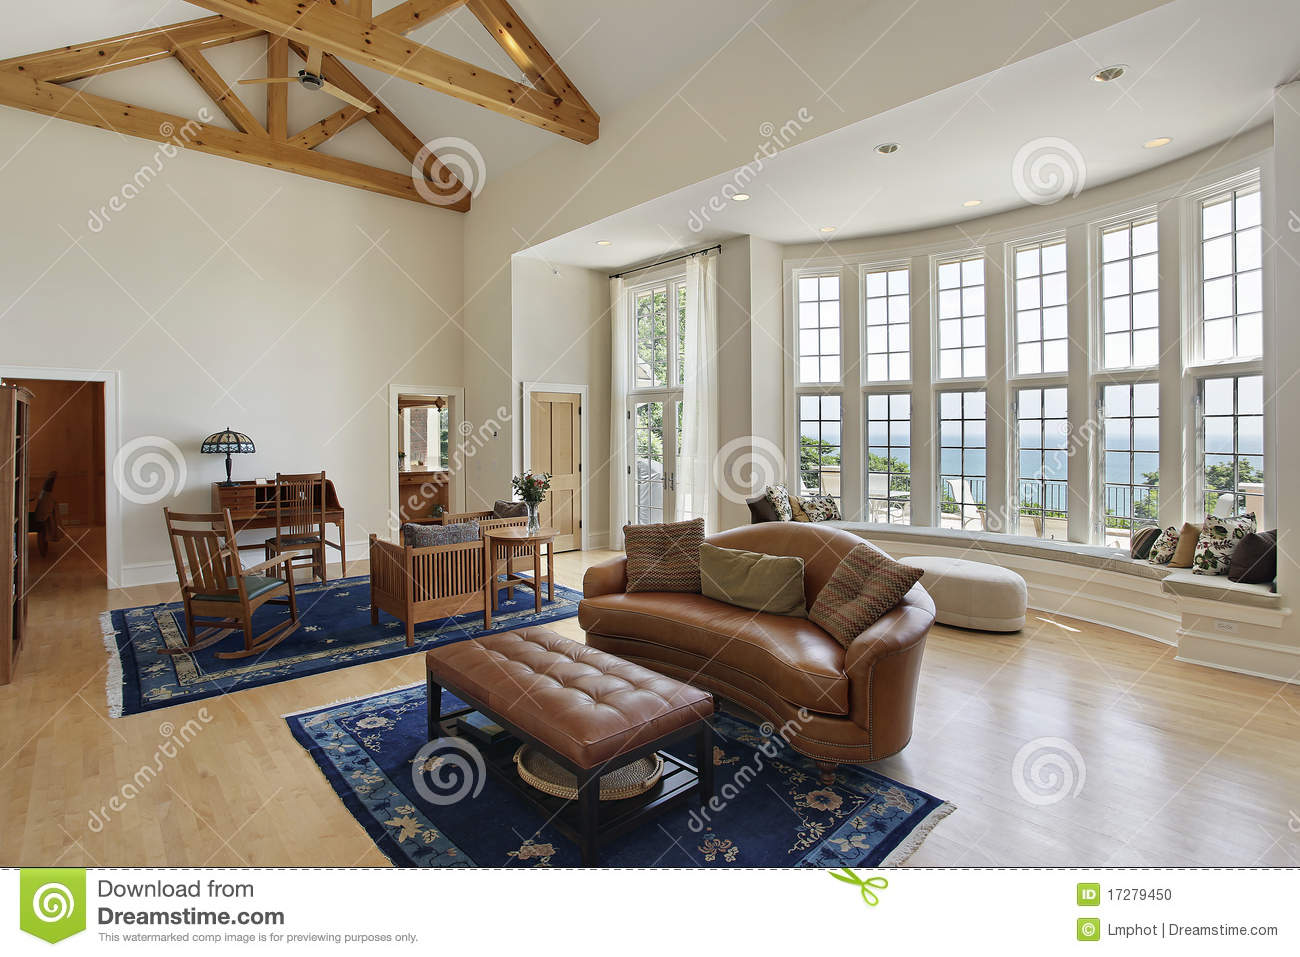 Living Room With Curved Windows Stock Photo Image 17279450